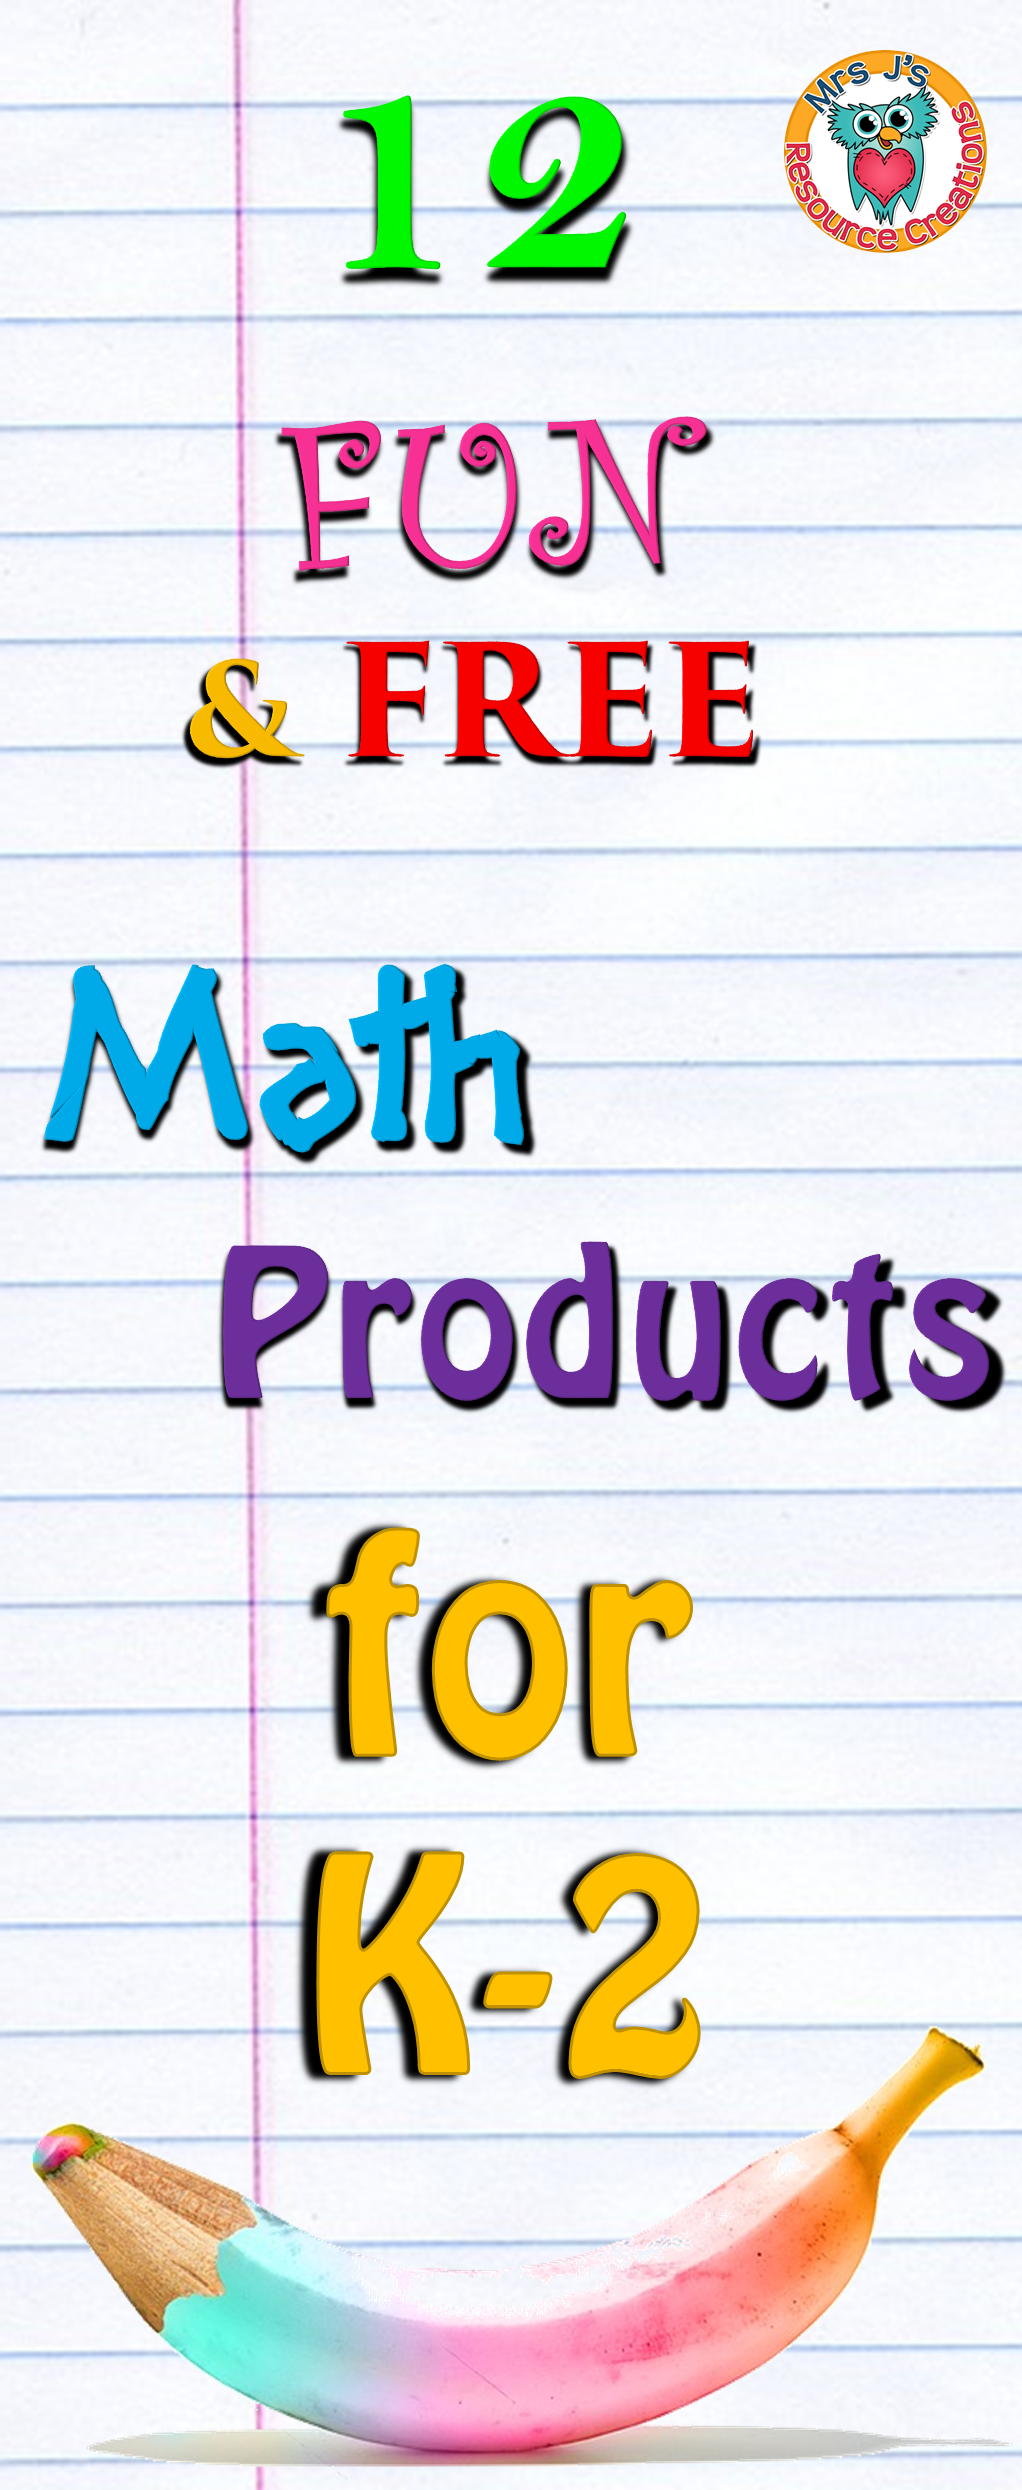 12 FREE K-2 Math Resources to Try! | Math Ideas & Lessons K-6 ...